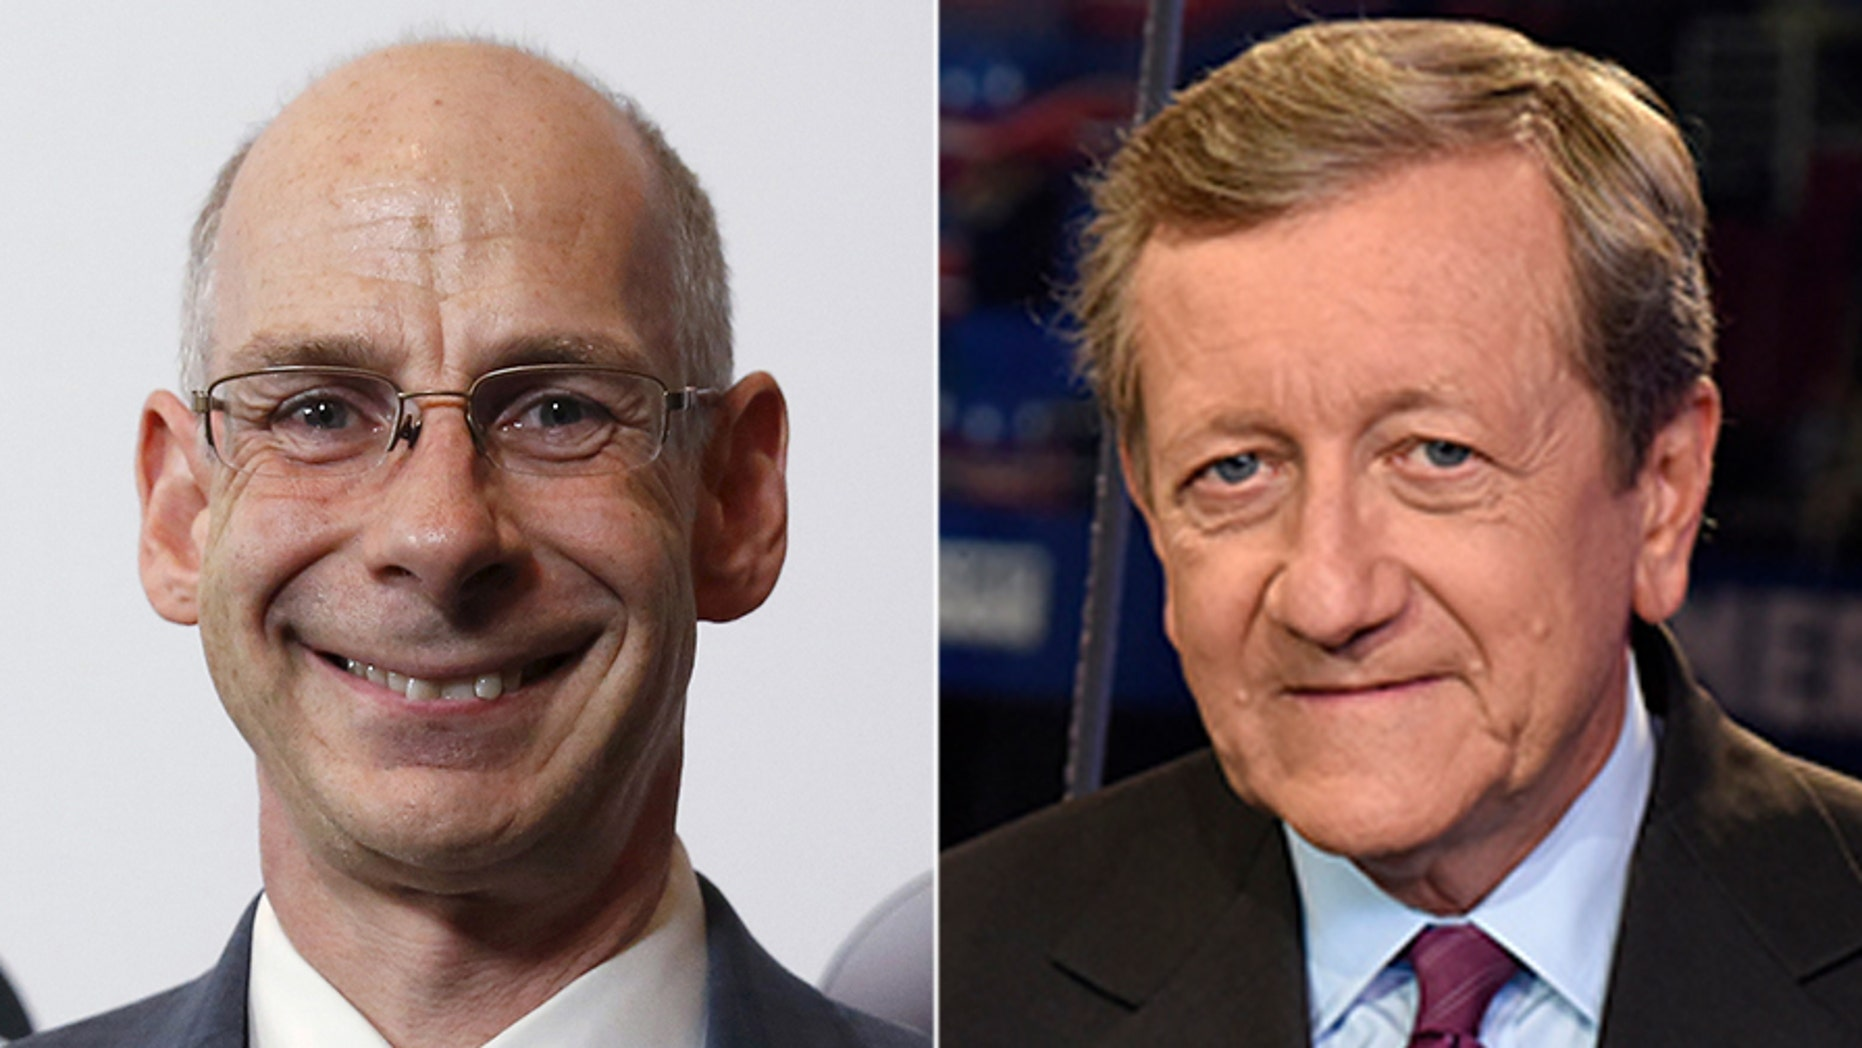 ABC News president James Goldston, left, berated staff Monday for suspended investigative reporter Brian Ross's botched story on former national security adviser Michael Flynn.